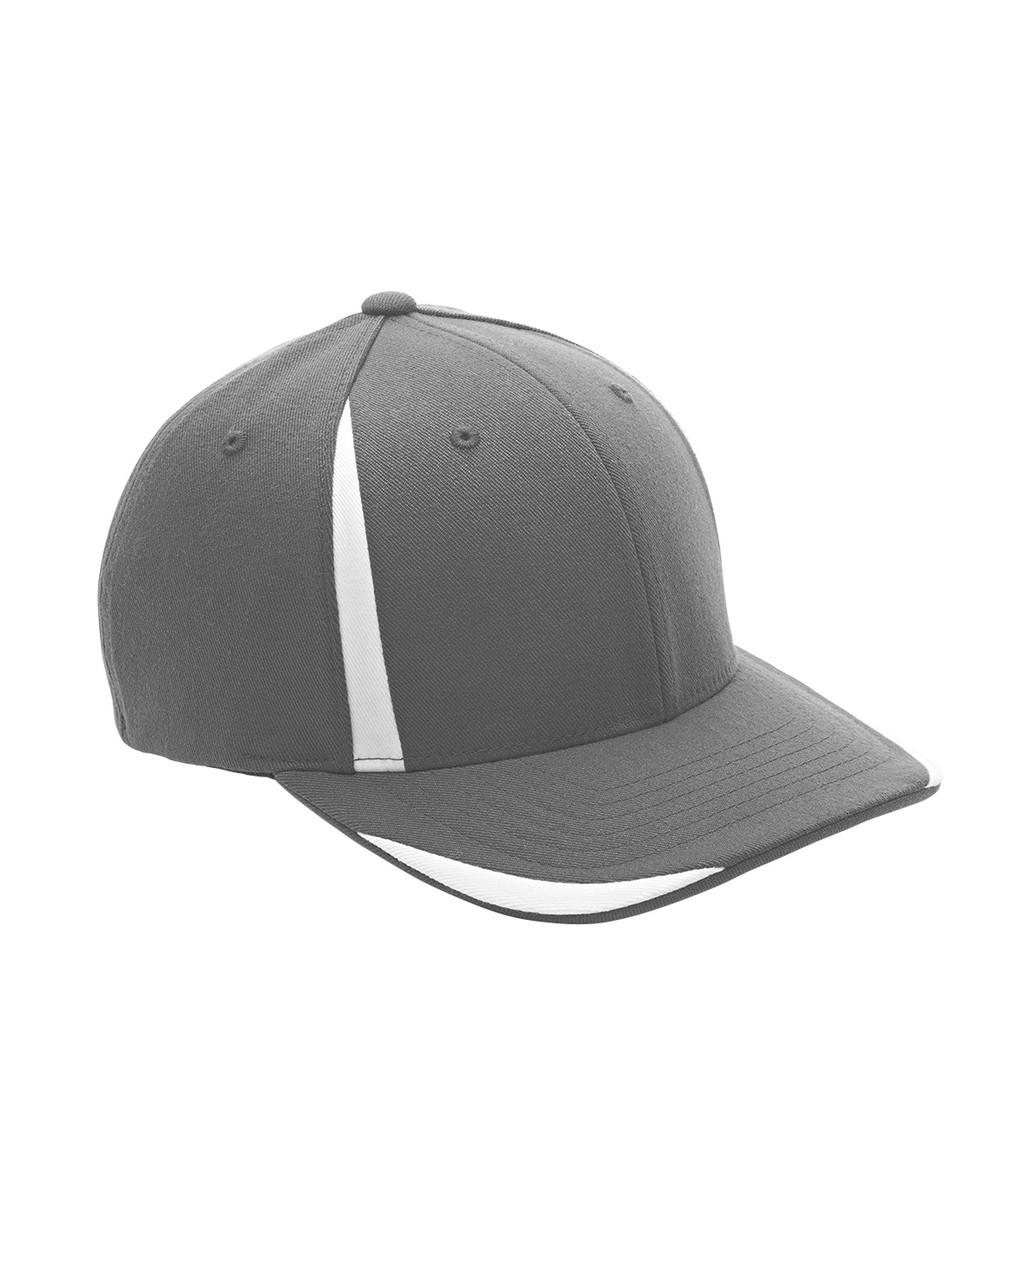 Graphite/White - ATB102 Flexfit for Team 365 Pro-Formance Front Sweep Cap